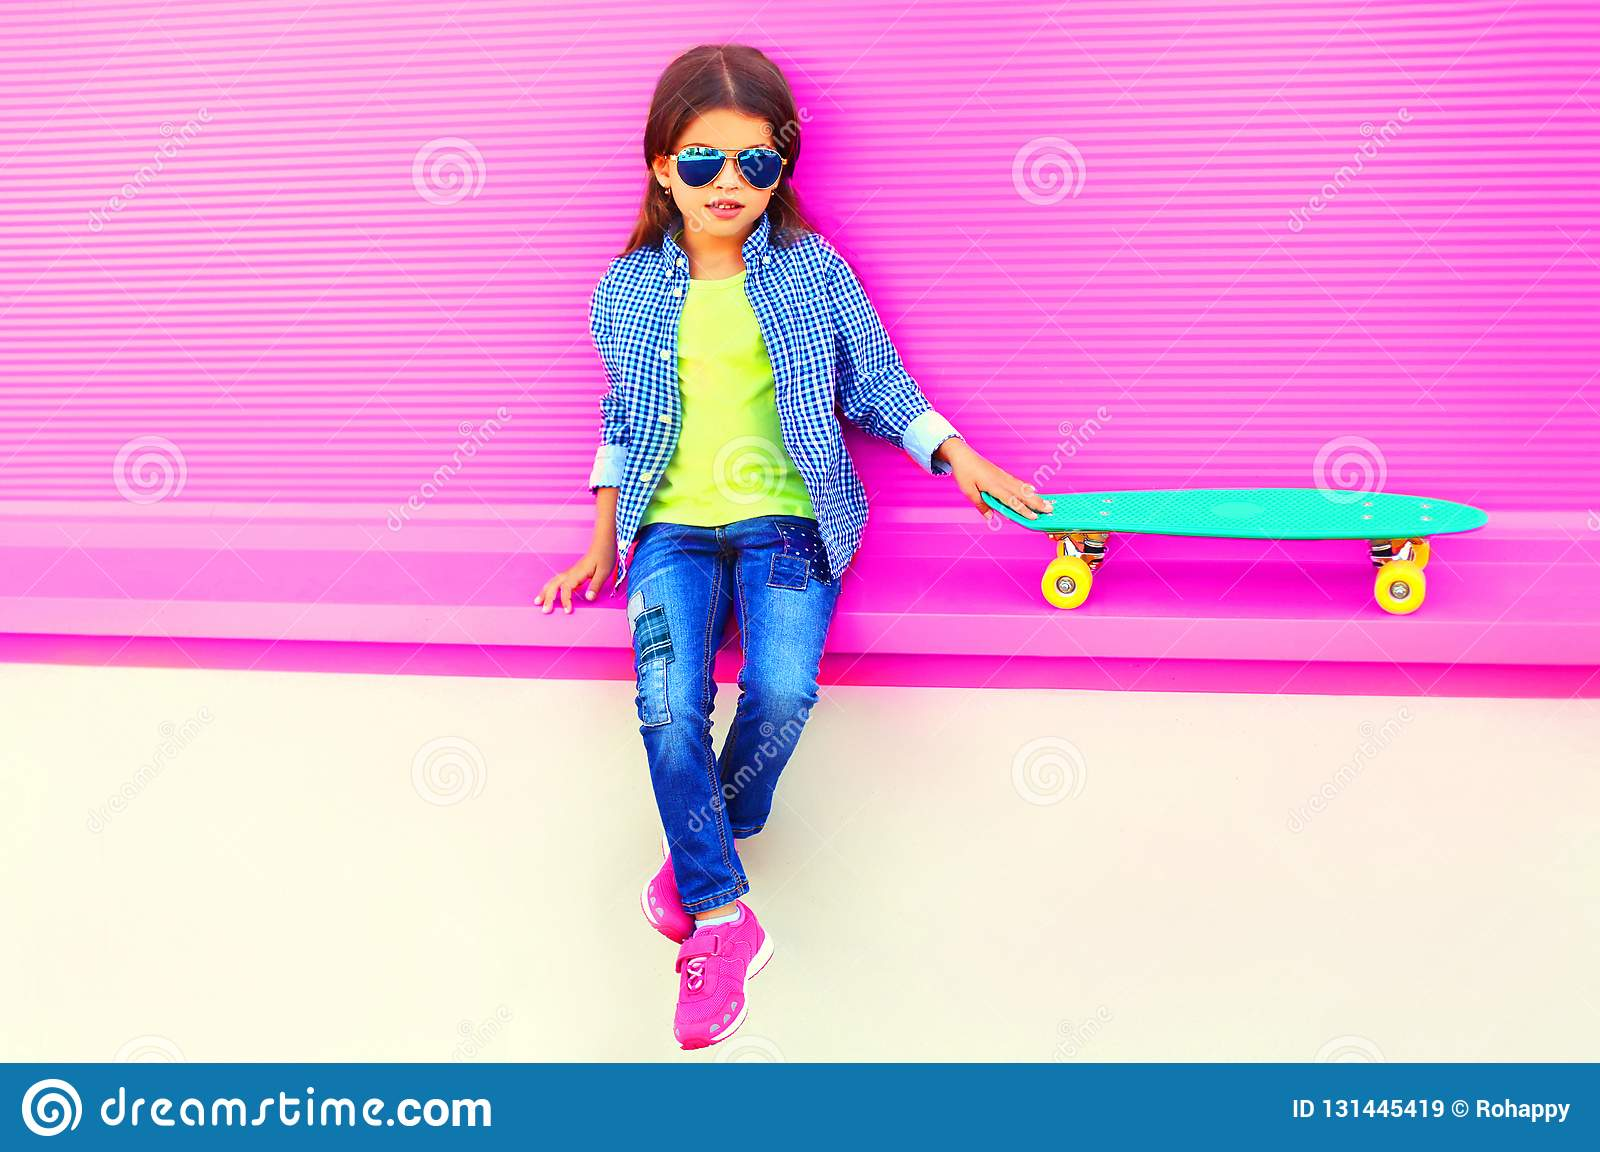 Fashion little girl child sitting with skateboard in city on colorful pink wall